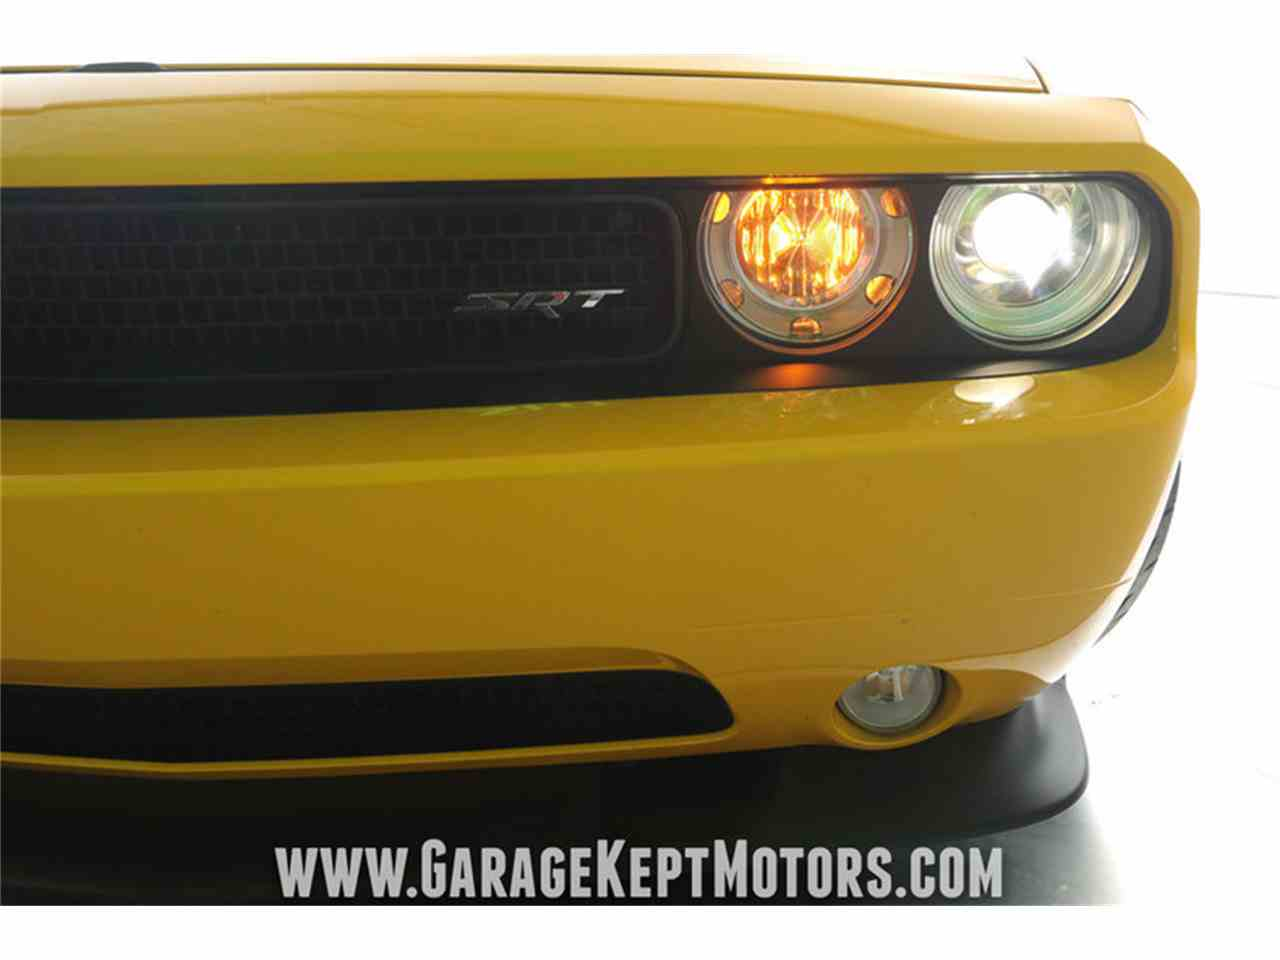 Large Picture of '12 Dodge Challenger SRT8 392 Yellow Jacket located in Grand Rapids Michigan - $36,500.00 - MAXR